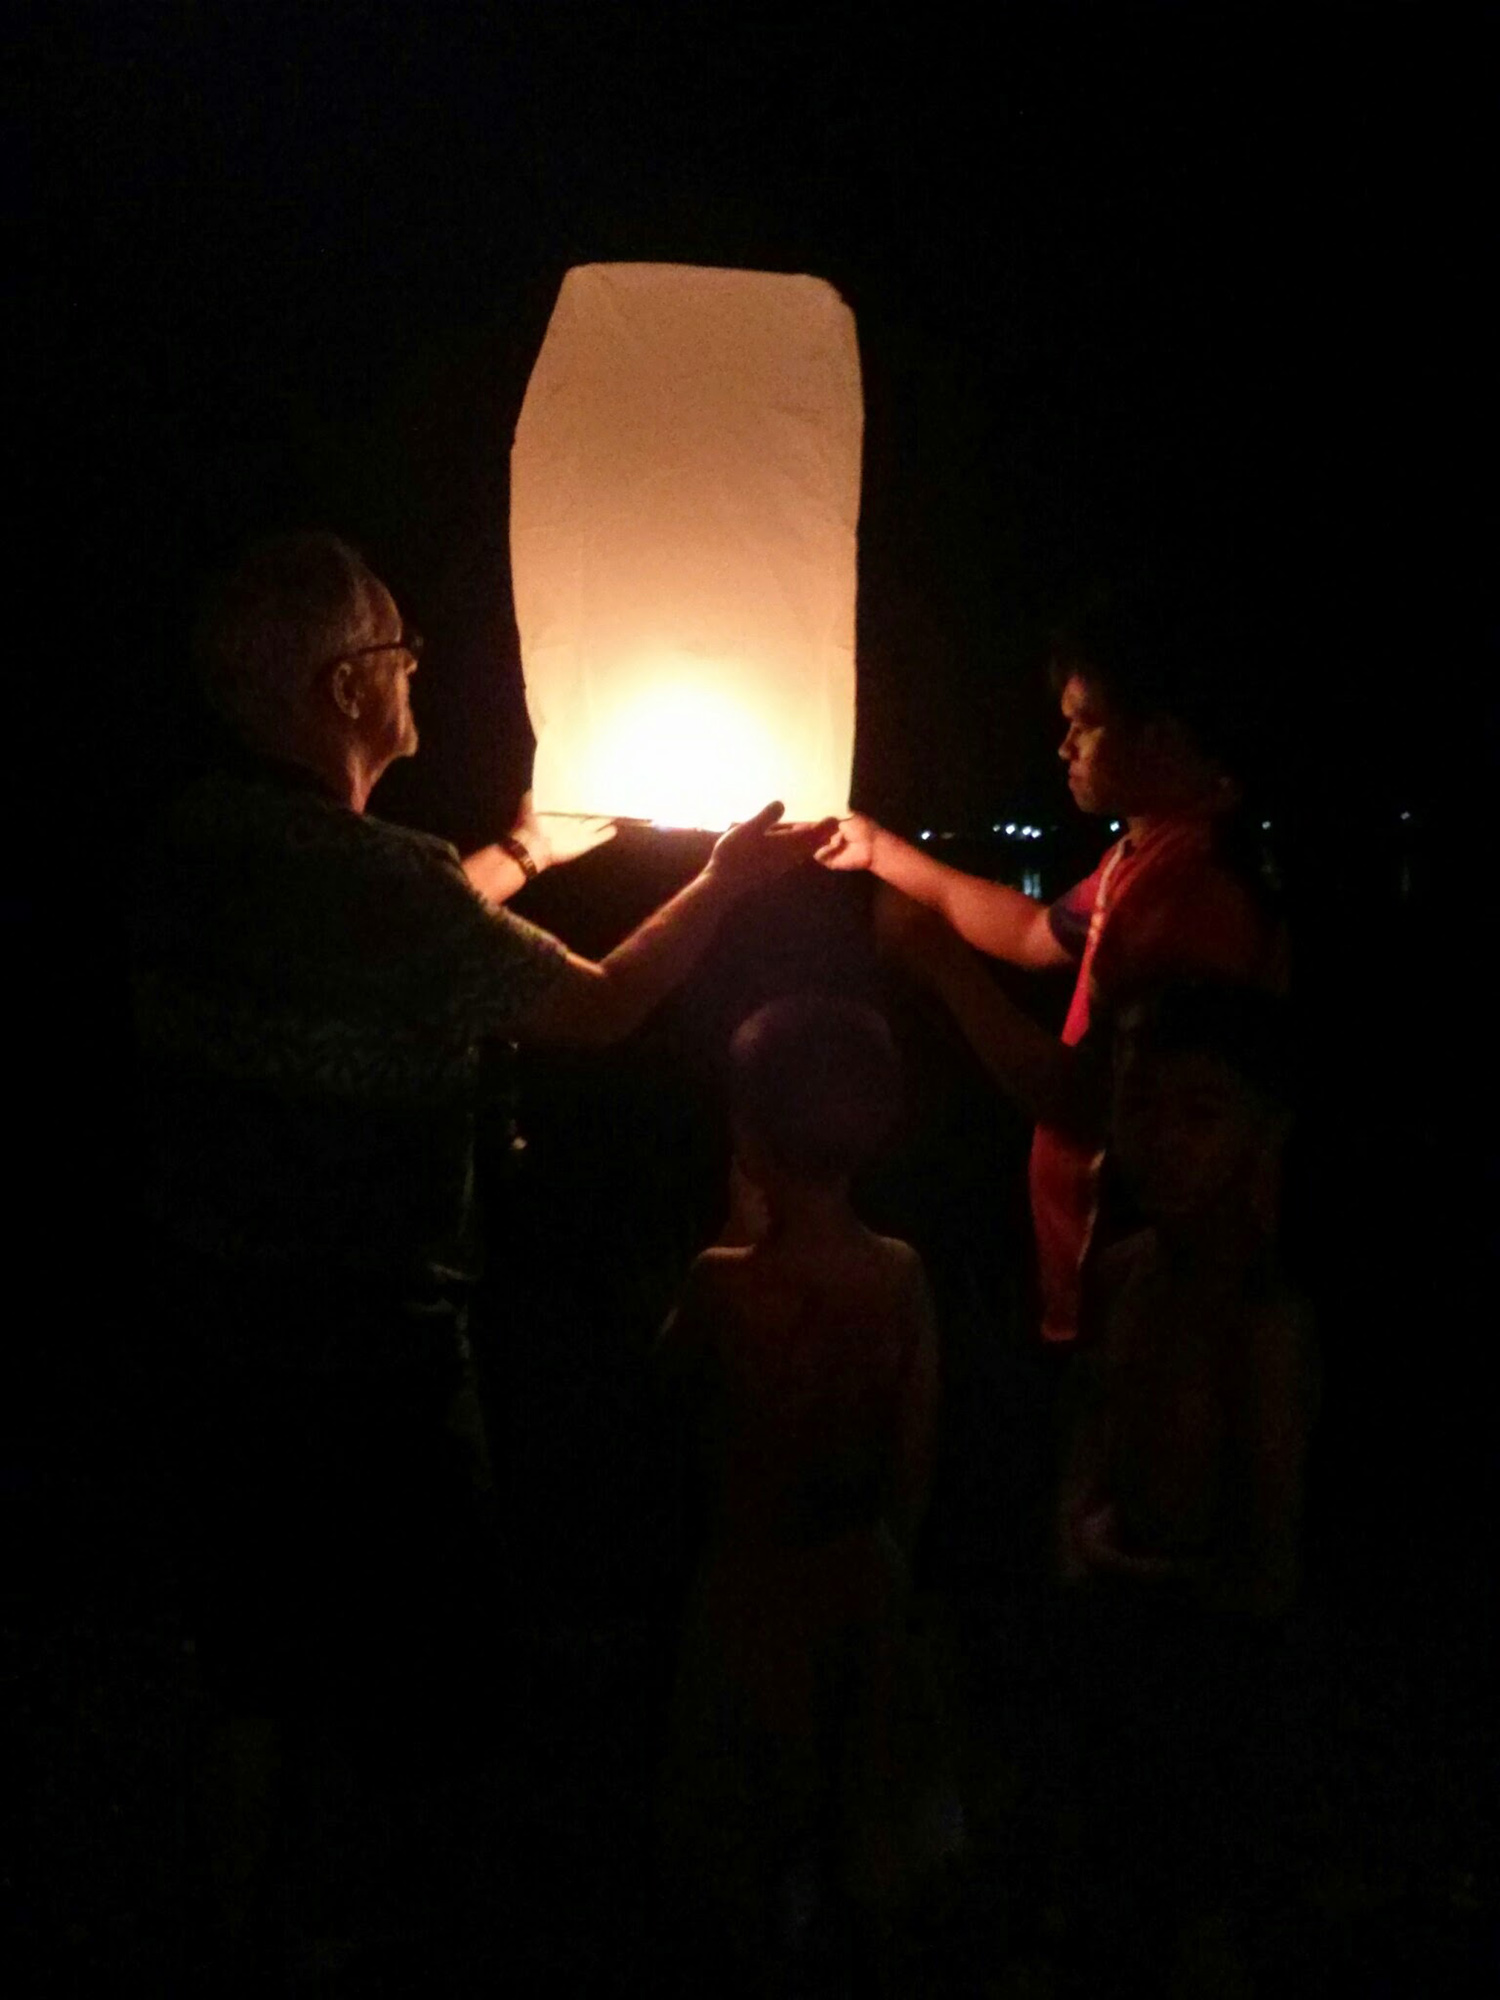 Our guests sending fire lanterns off over the river to Lao during the Naga festival, 14 to 17 October 2016